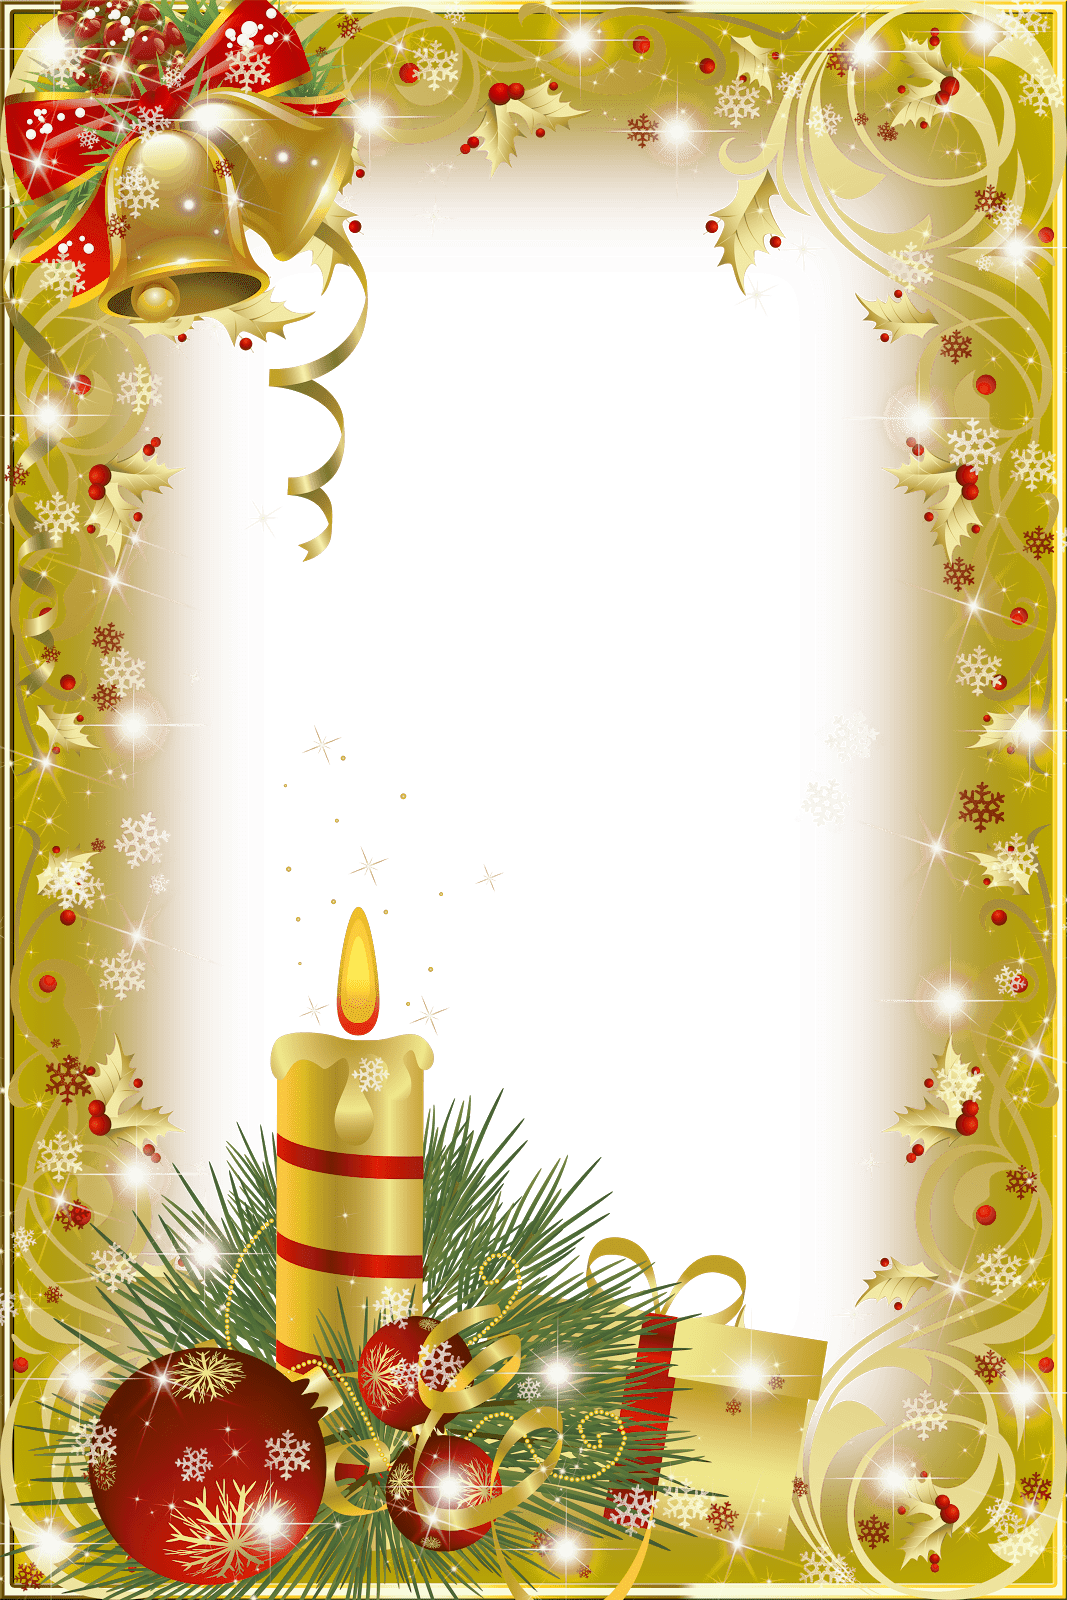 Christmas frame gold candle transparent png stickpng for Weihnachtskugeln transparent